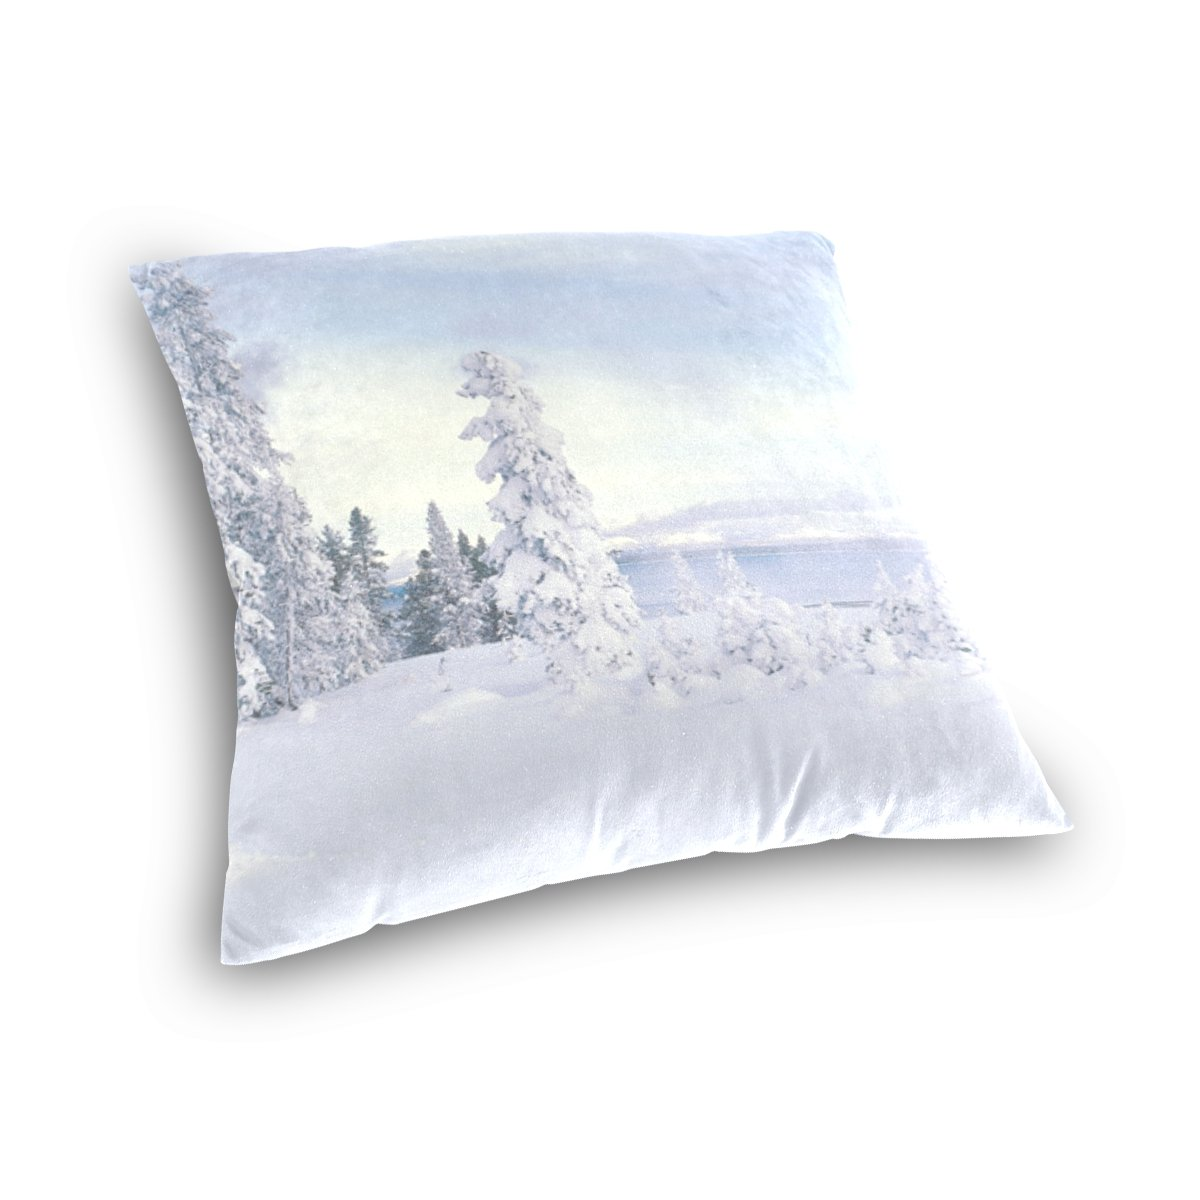 Amazon.com: XIMSTAR White Snowing Printing Cotton Velvet ...